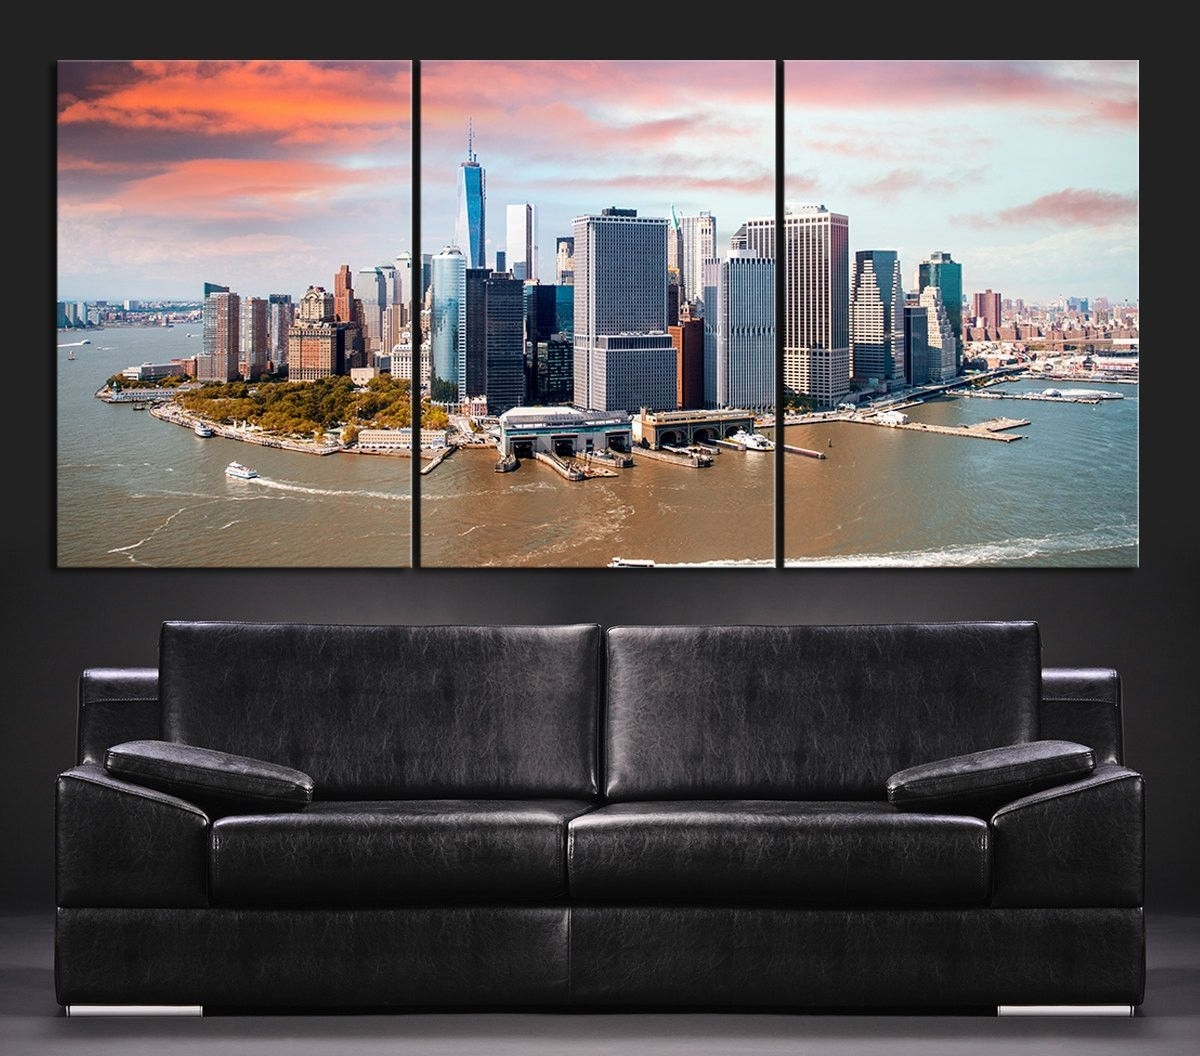 Large Wall Art Canvas Print + Skyline Panorama New York Manhattan Pertaining To Most Recently Released Murals Canvas Wall Art (View 9 of 15)